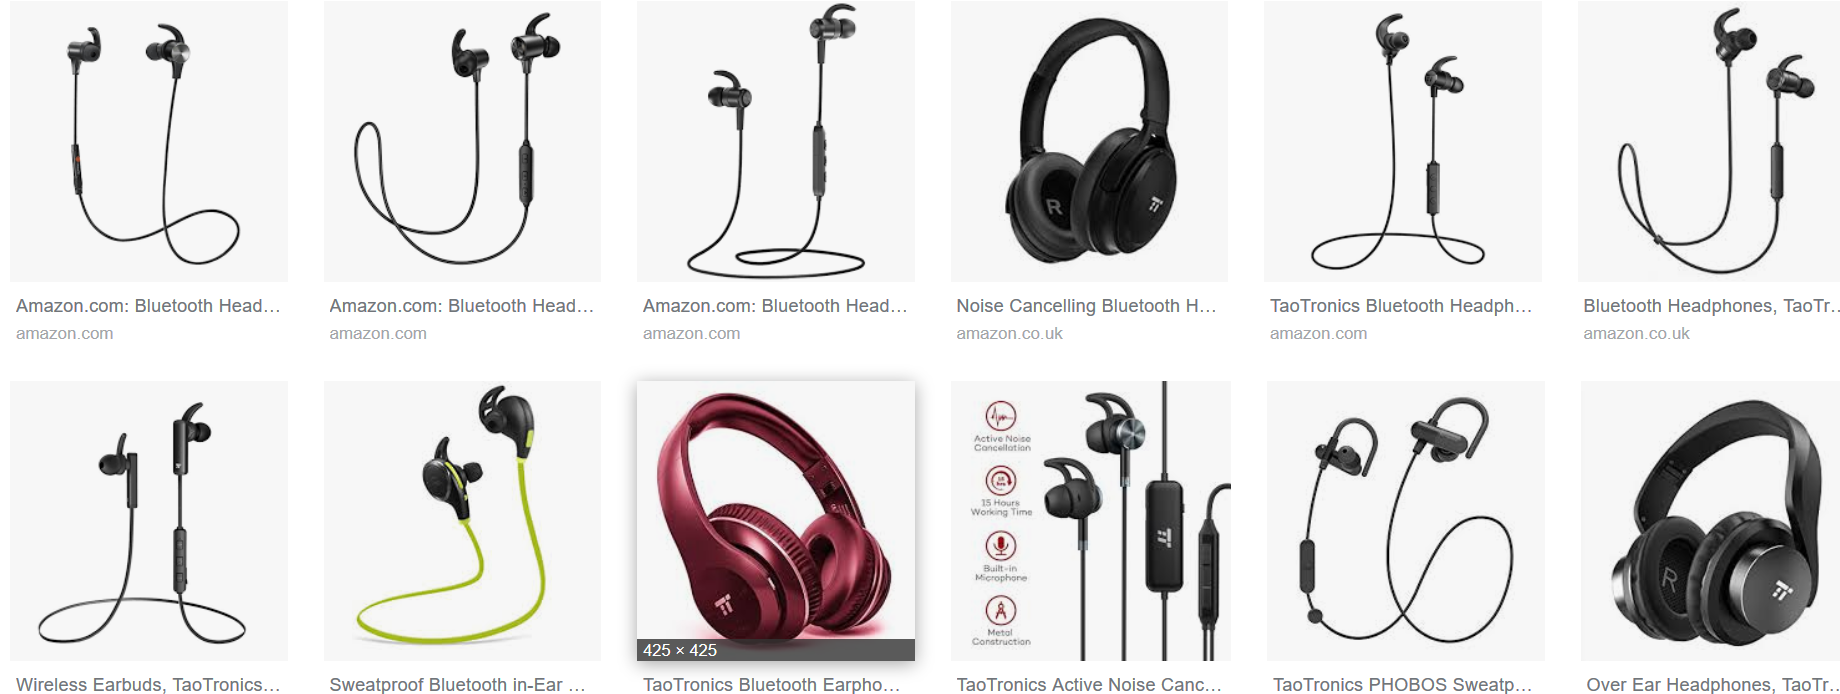 Taotronics Headphones coupon